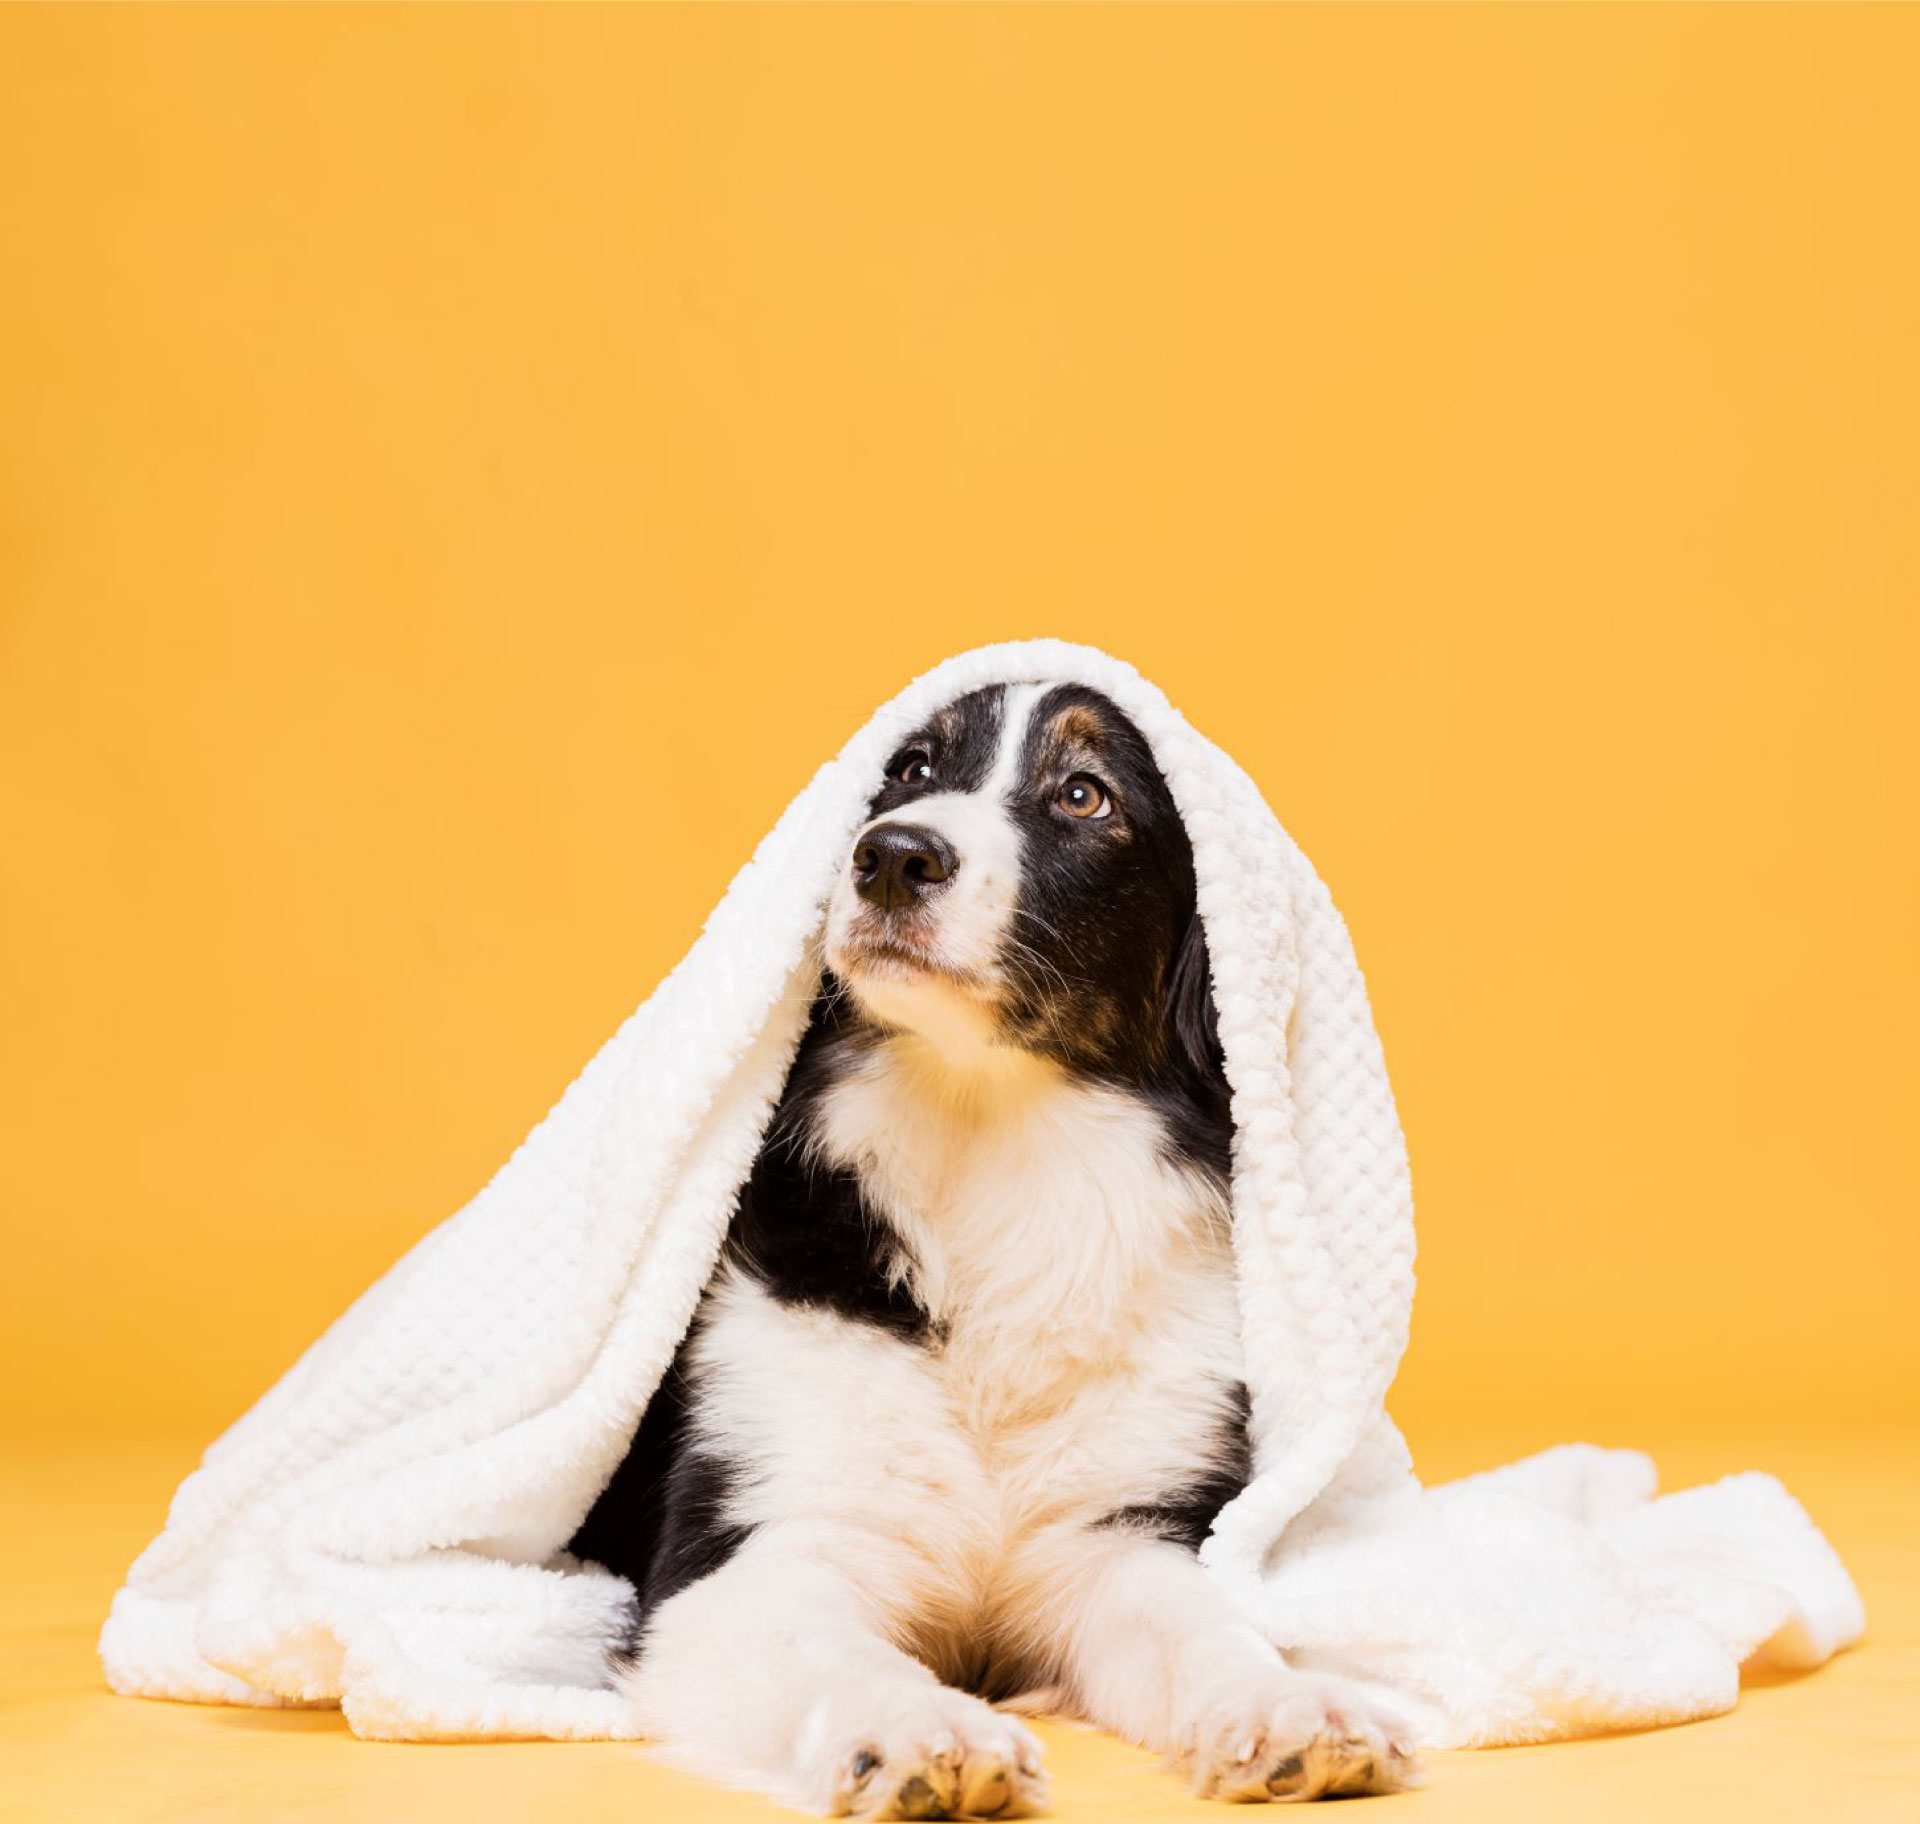 cute-dog-with-towel